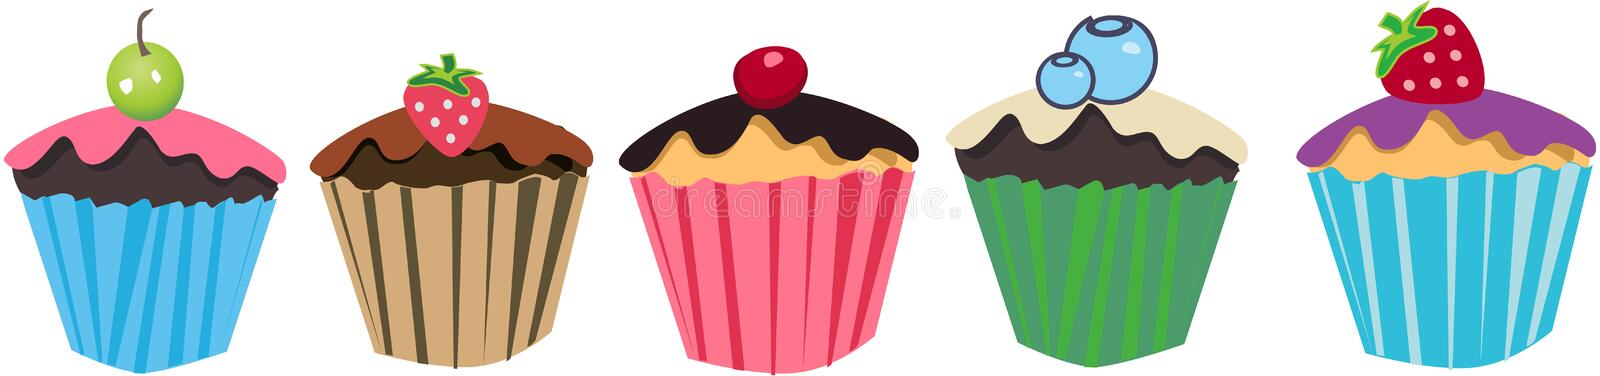 Cupcakes with fruits. Colorful retro Ice Cream scoops with fruits vector illustration